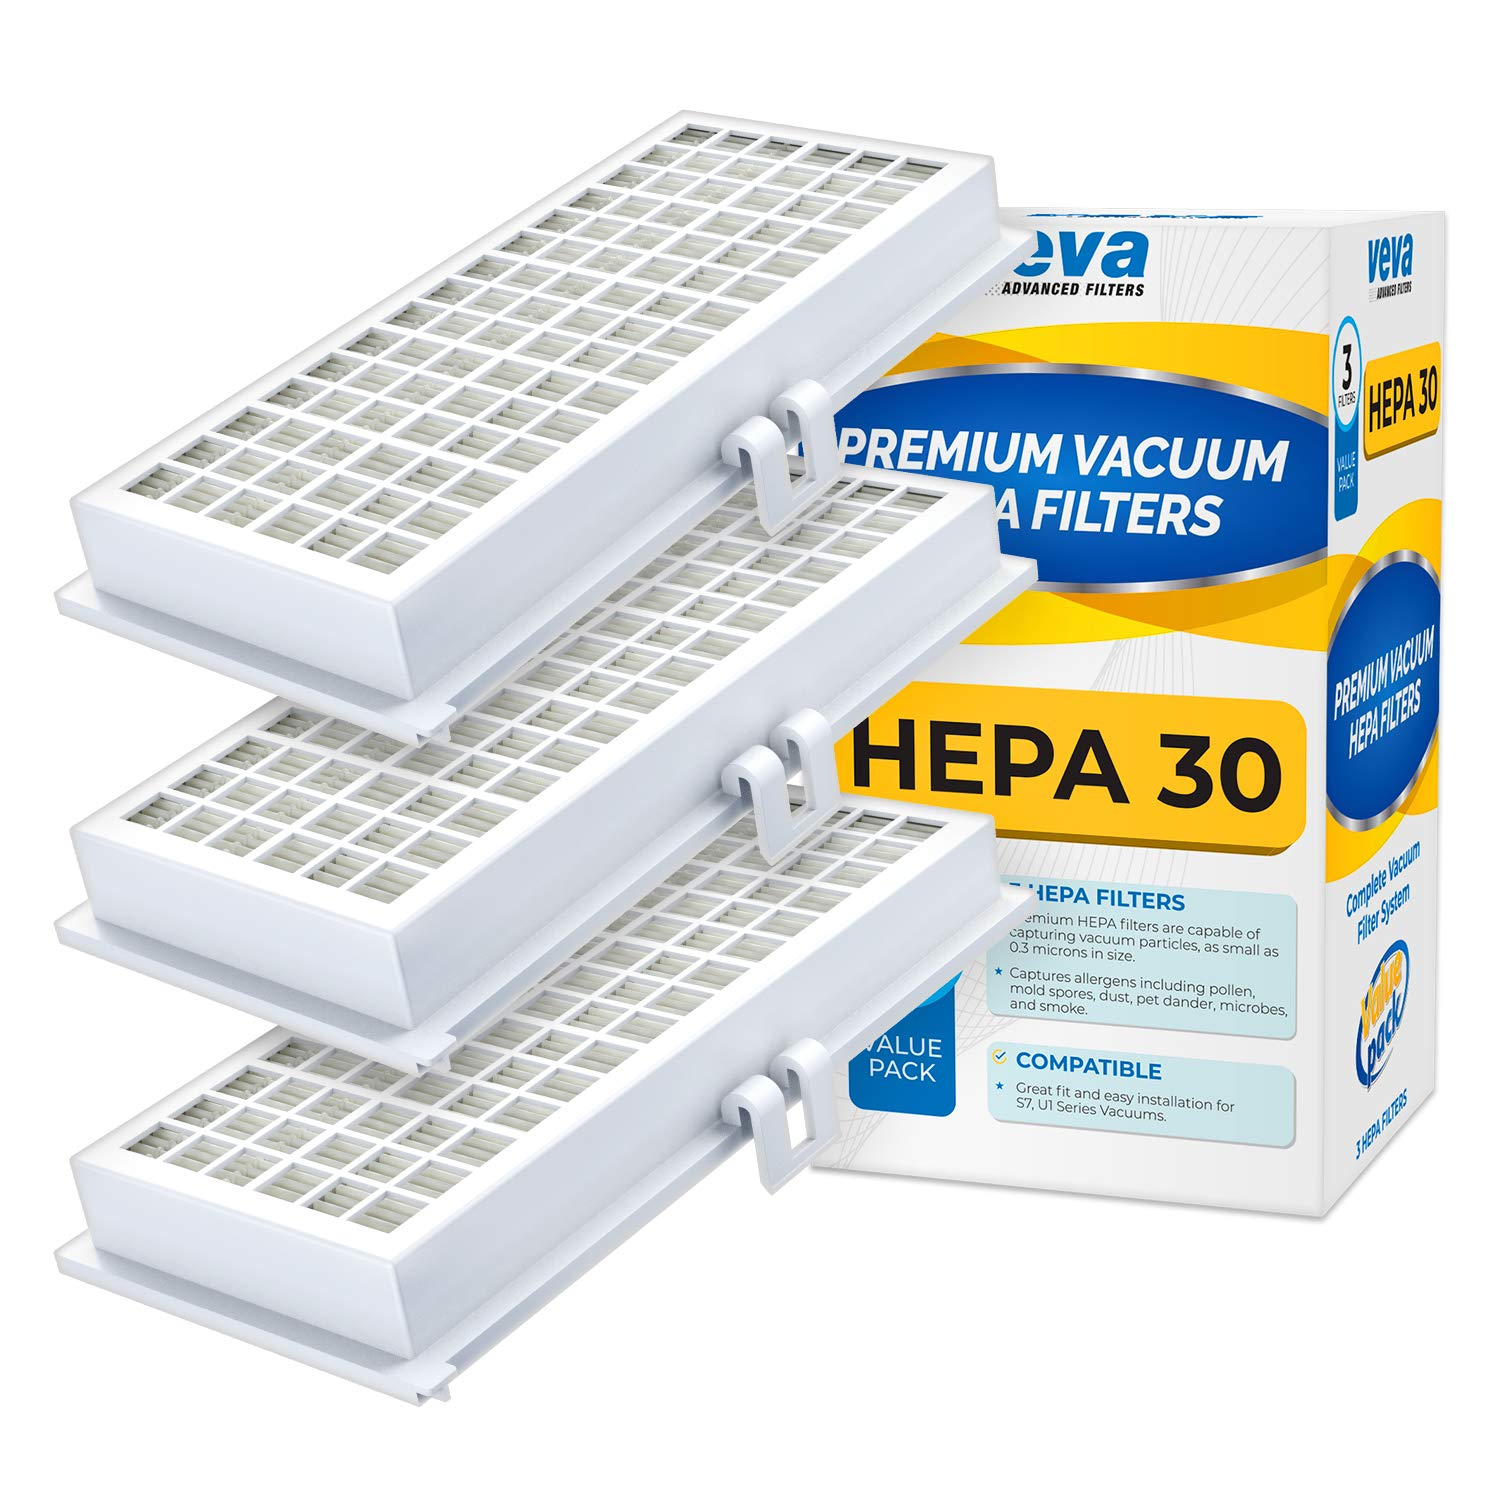 VEVA 3 Pack Premium Vacuum HEPA Filter Set Model SF-HA 30 Works with Miele S7 and U1 Series Vacuum Cleaners